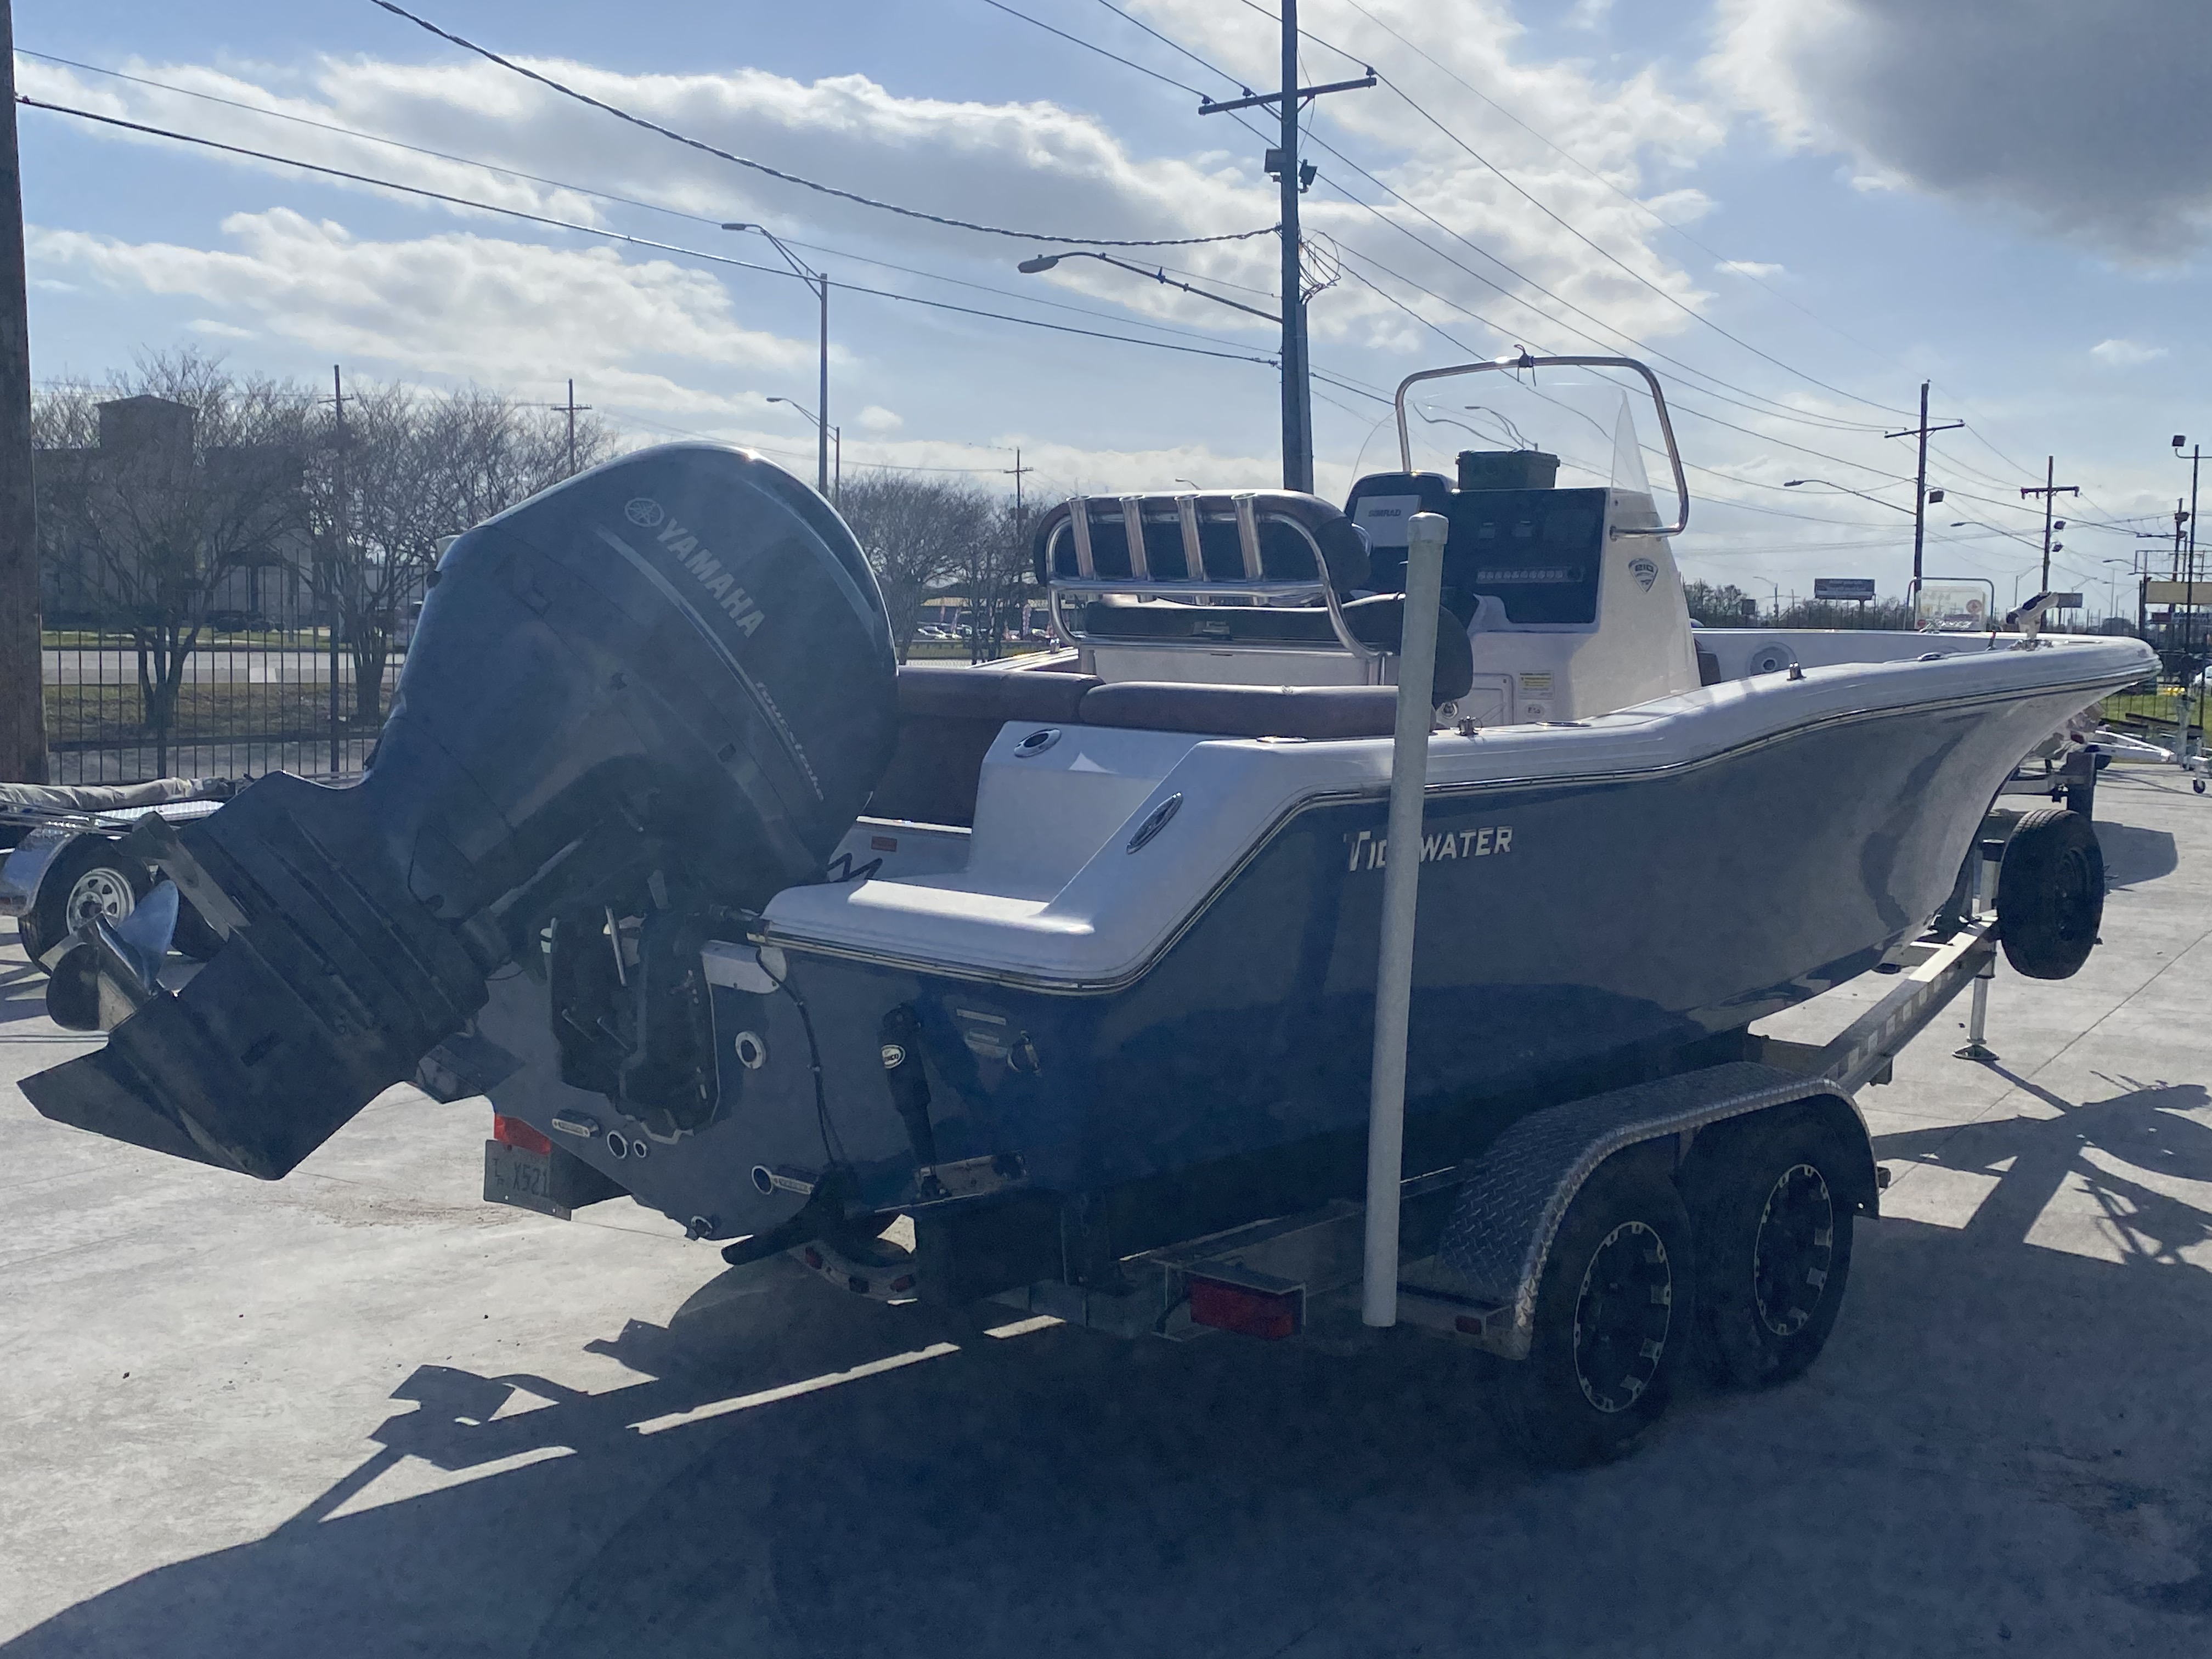 2017 Tidewater boat for sale, model of the boat is 210 & Image # 2 of 19